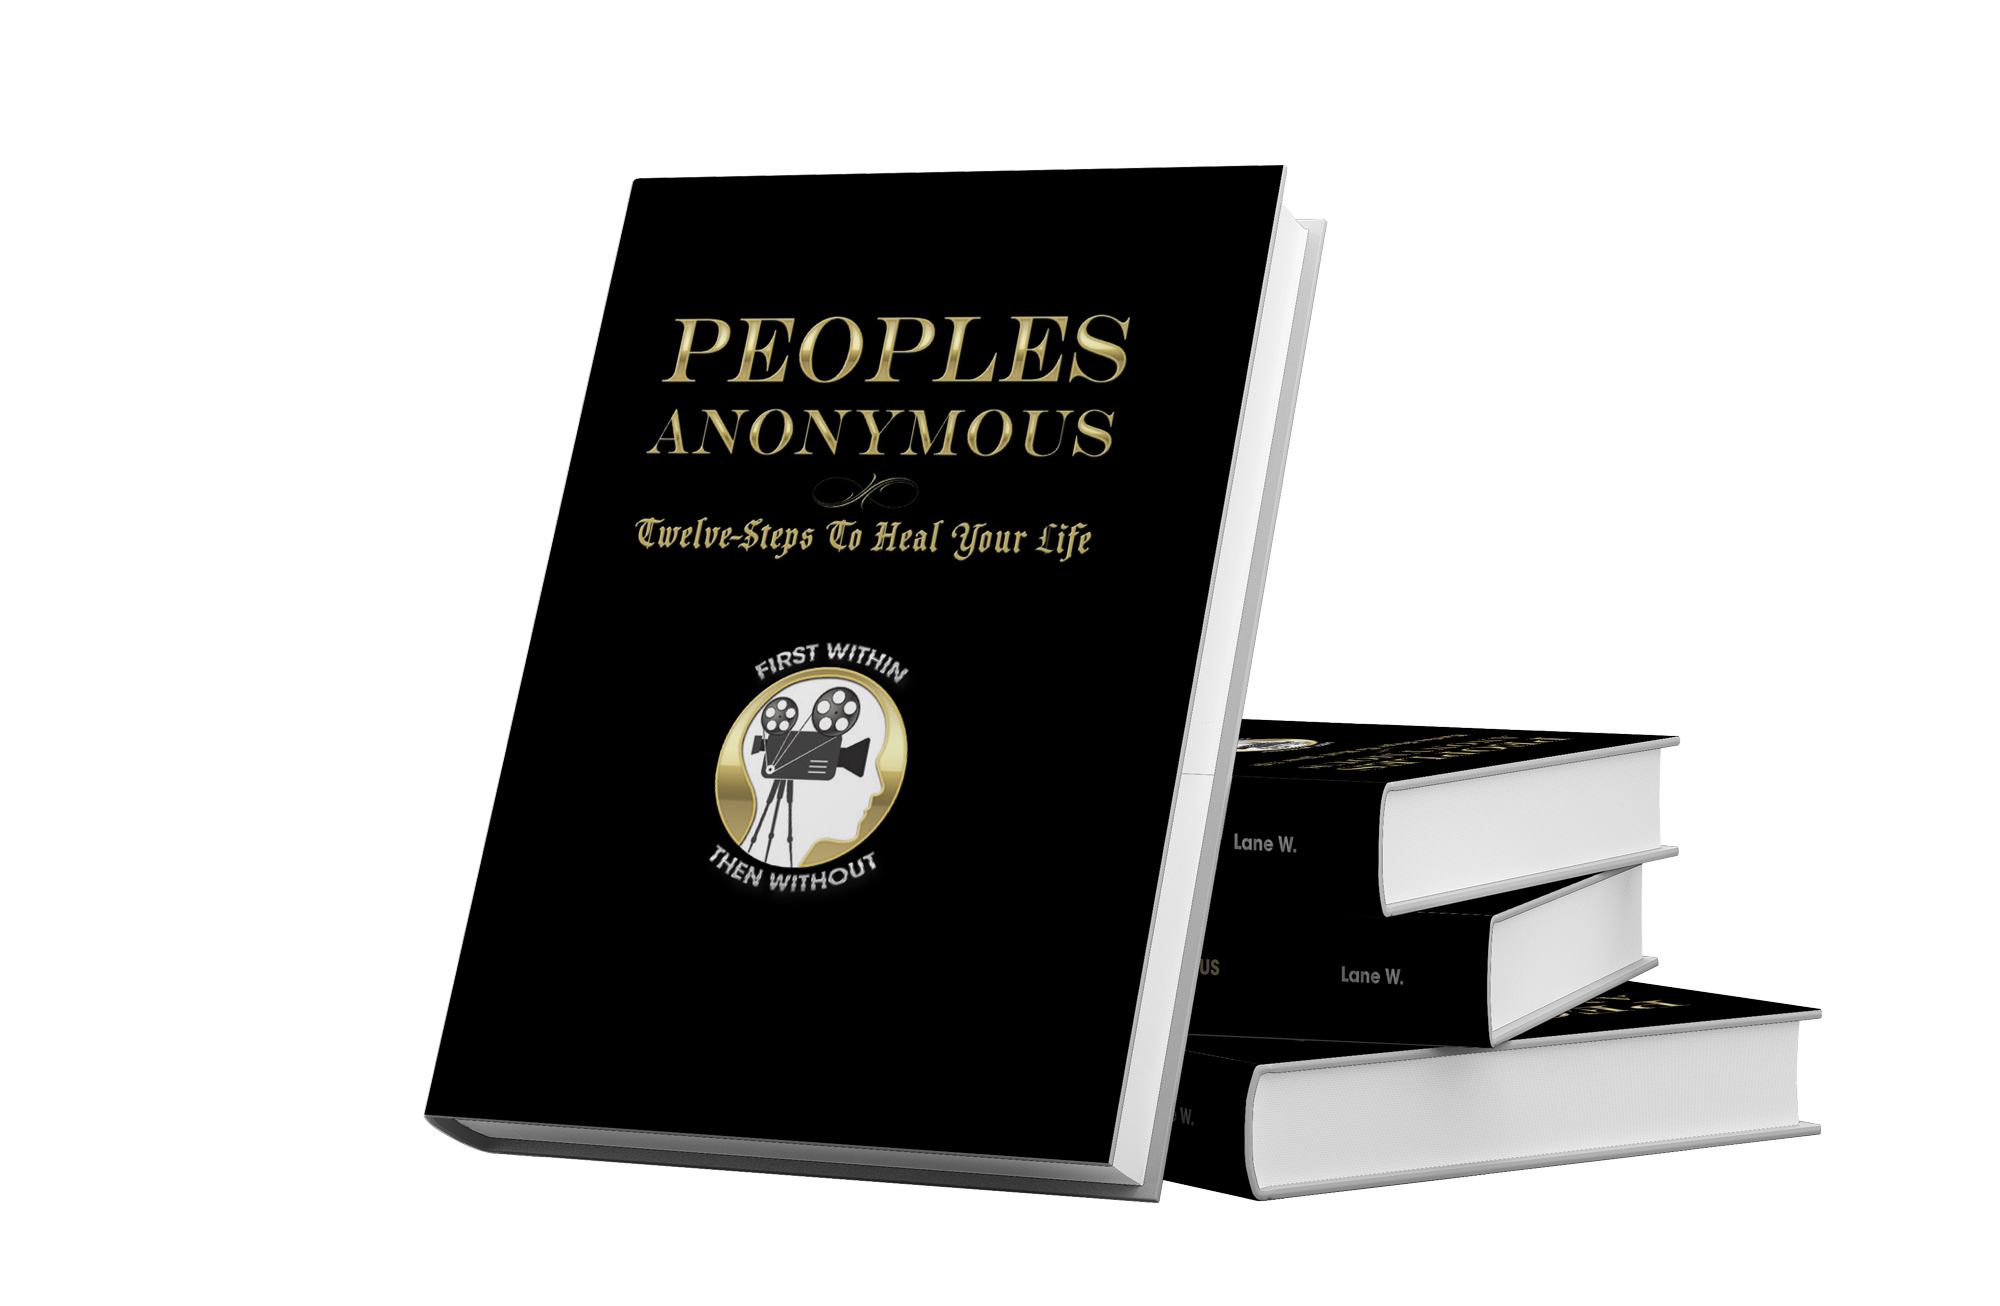 WELCOME TO PEOPLES ANONYMOUS